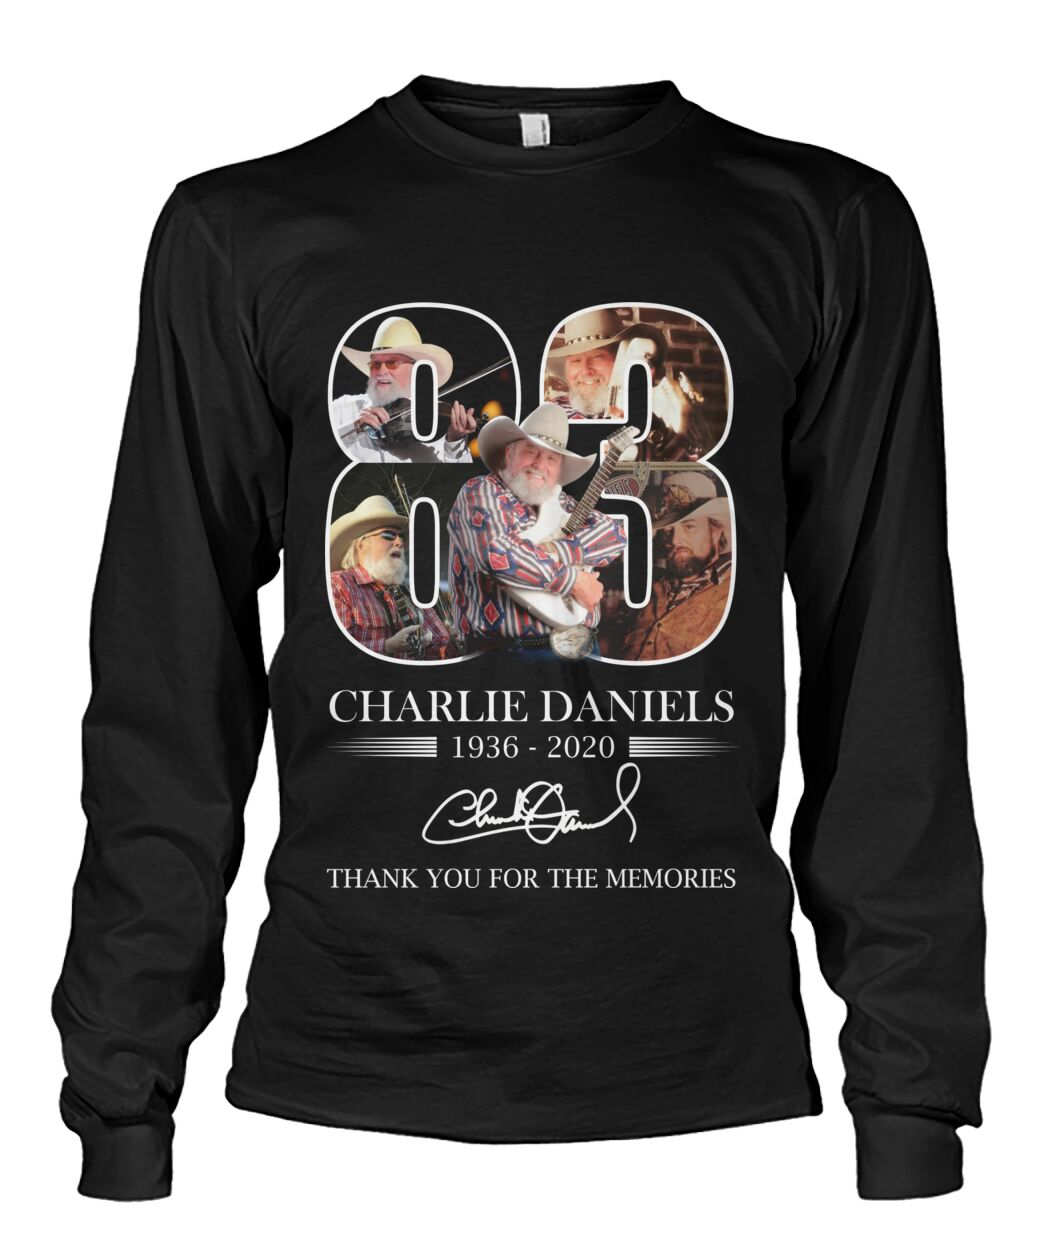 Charlie daniels 1936 2020 thank you for the memories signature